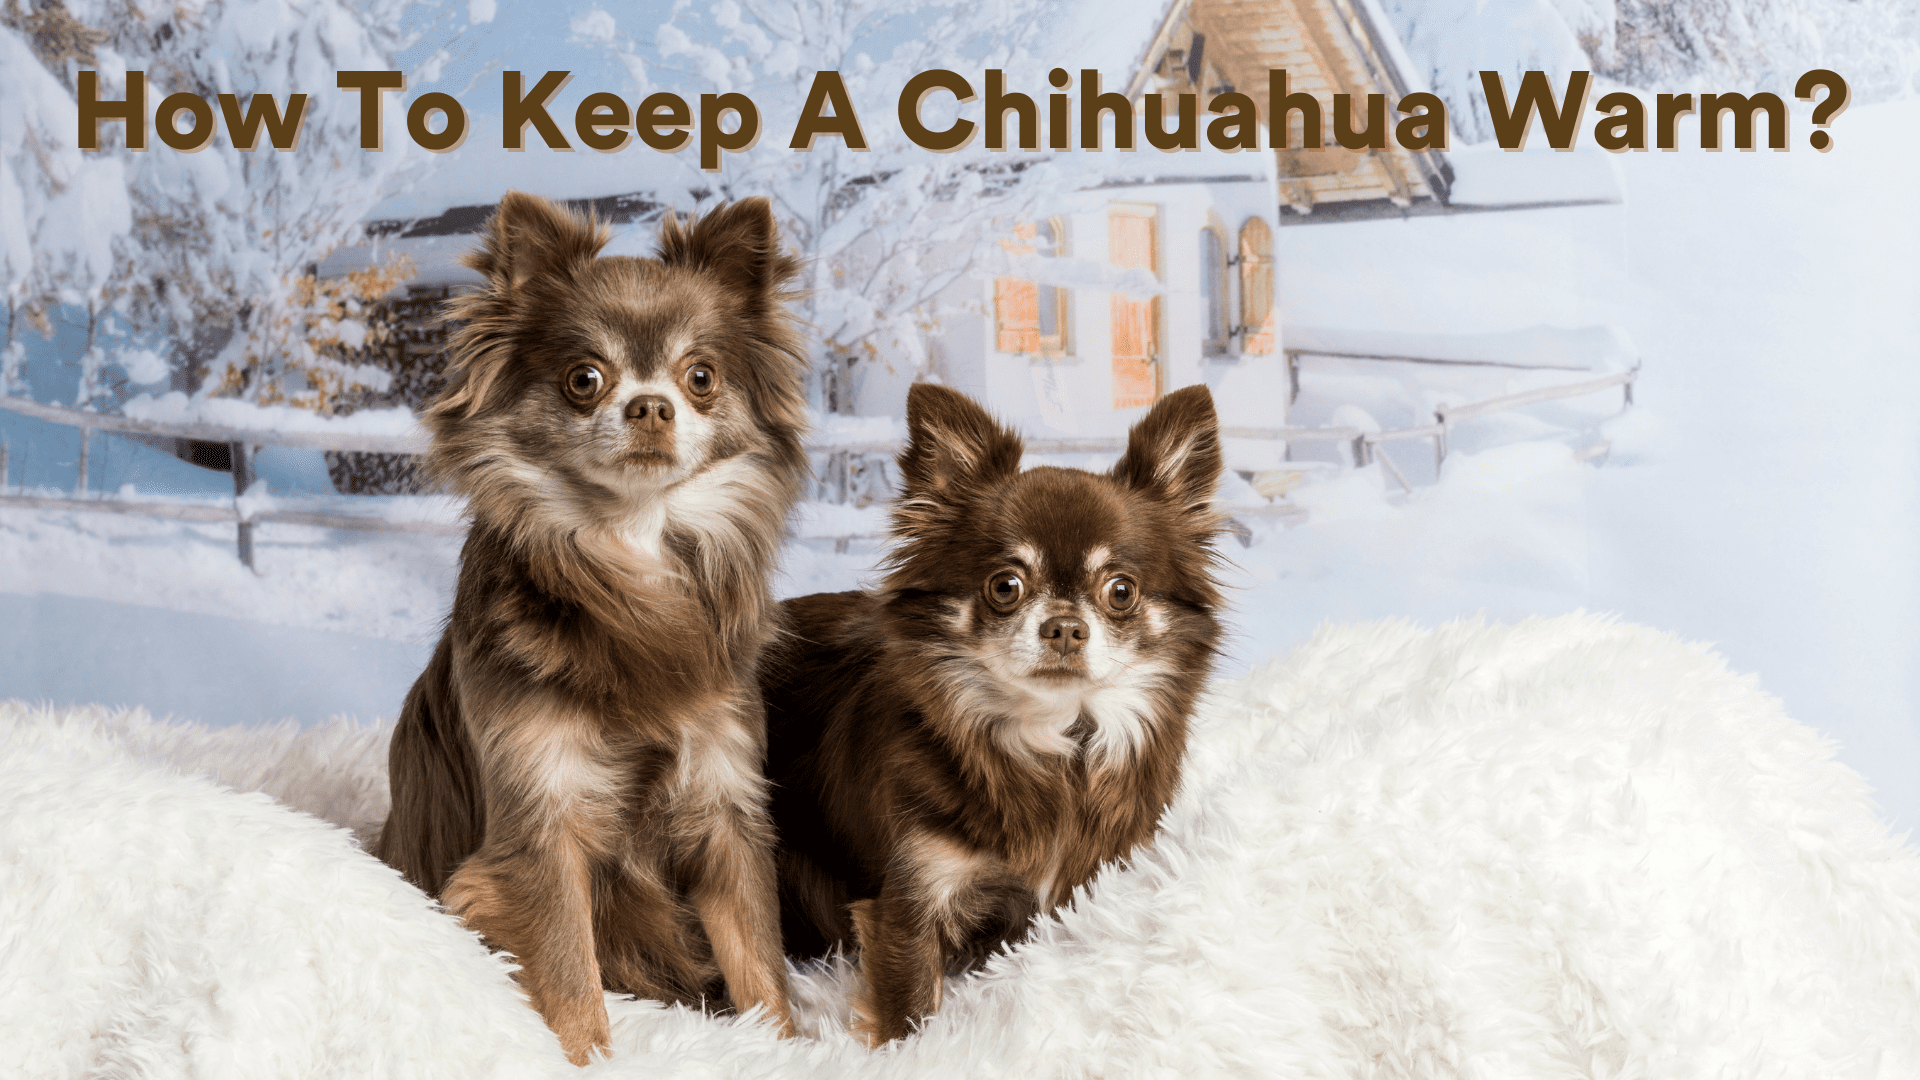 How to Keep a Chihuahua Warm During Winter?